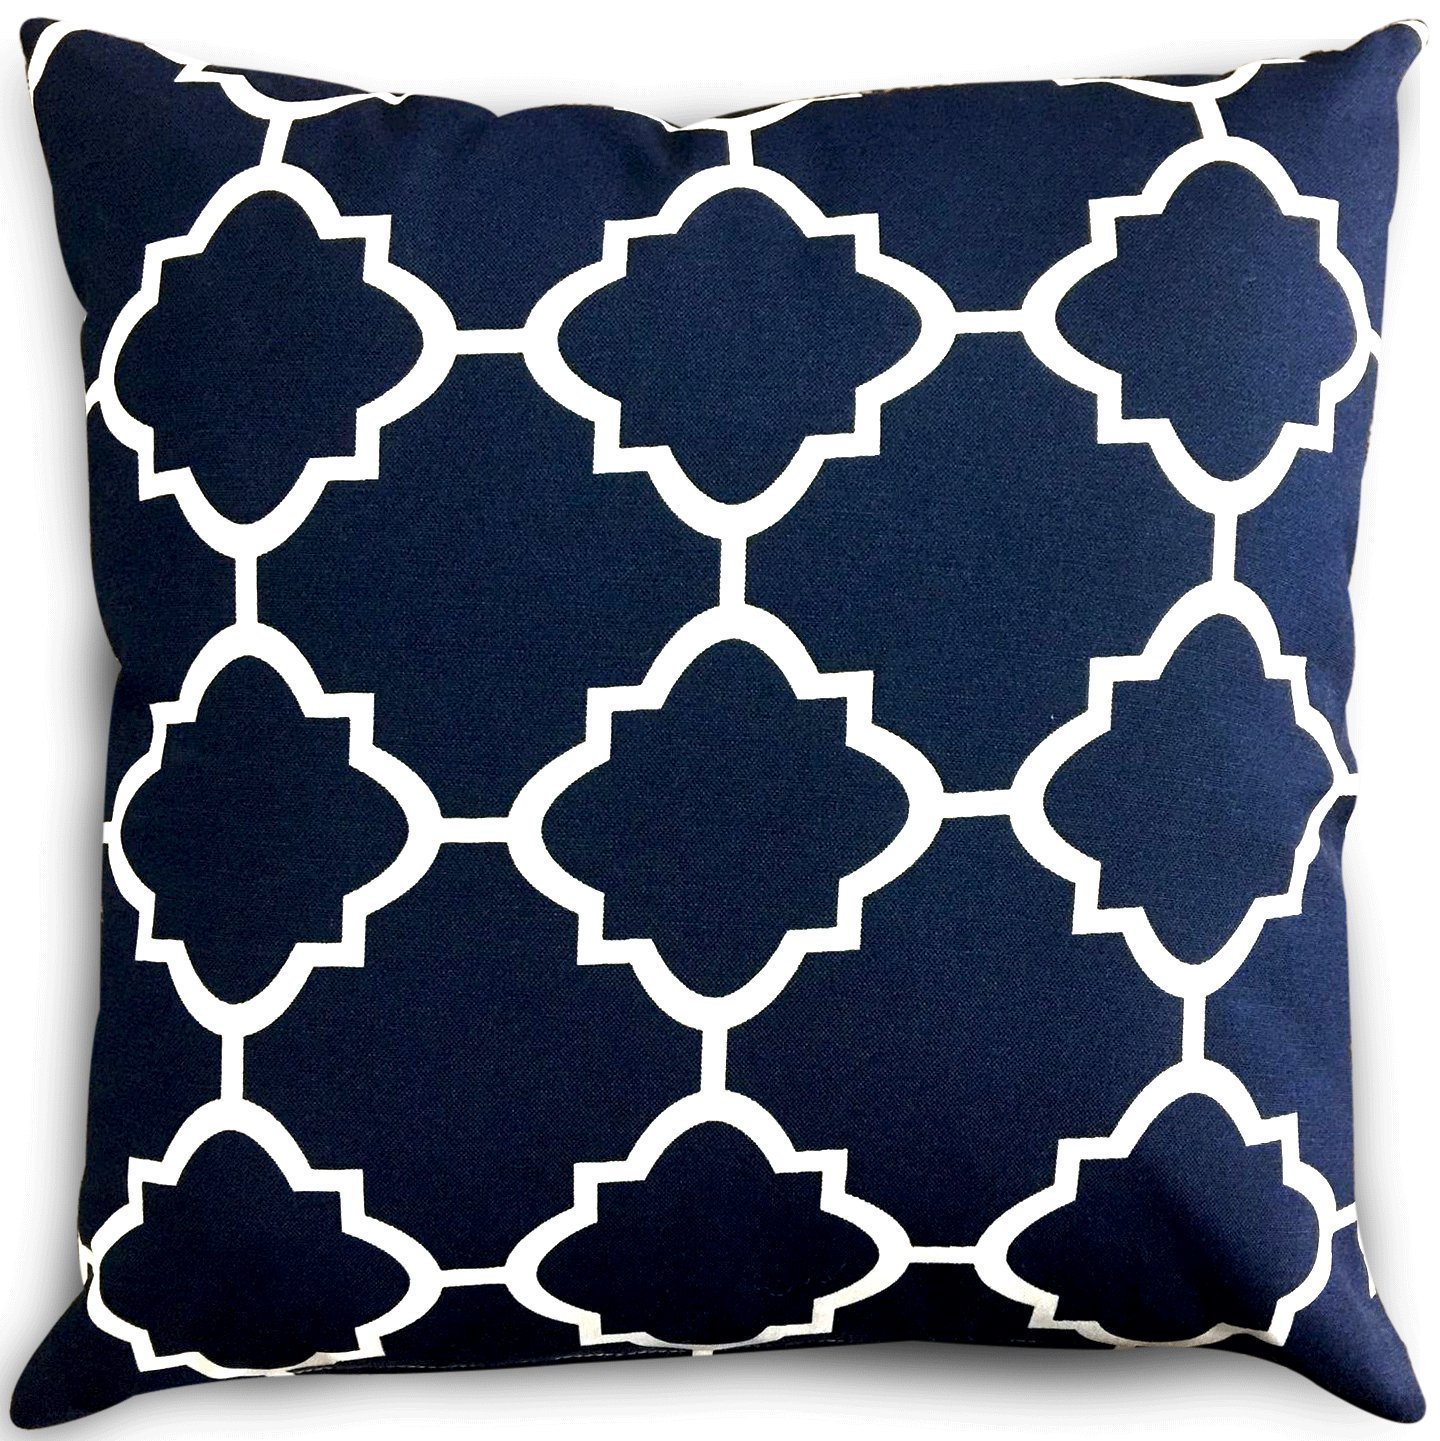 Utopia Bedding Decorative Square 18 x 18 inch Throw Pillow - Navy & White Moroccan Quatrefoil Lattice Cushion Pillow UH0367